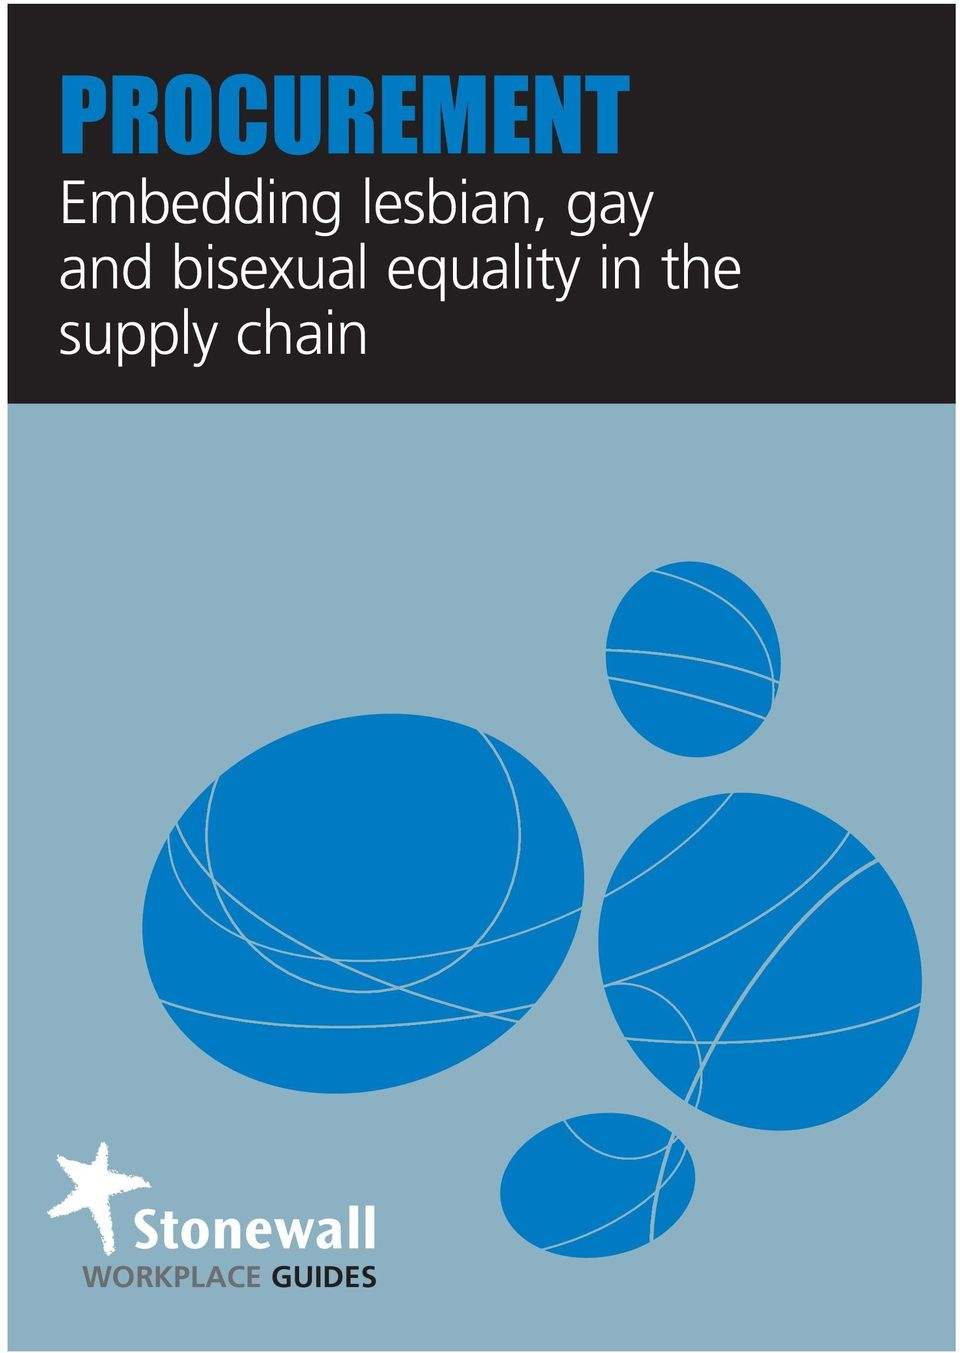 bisexual equality in